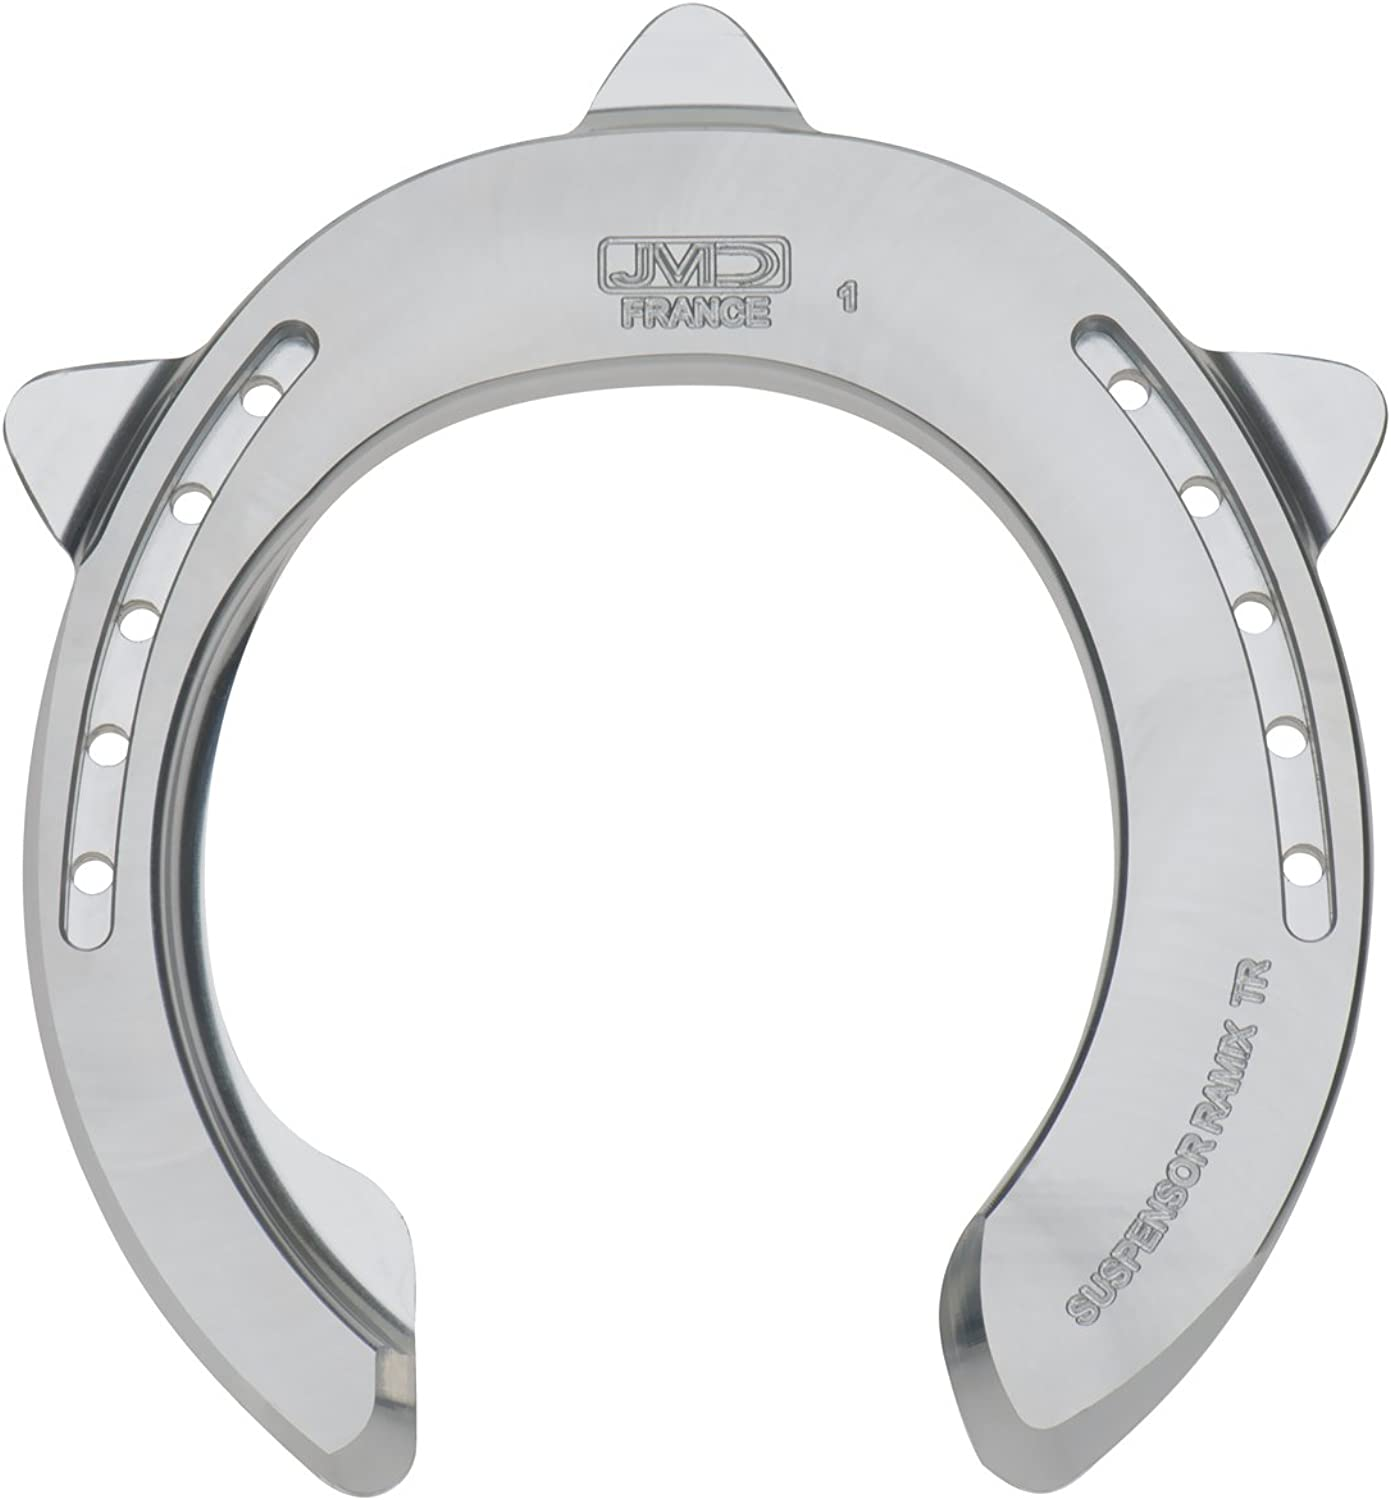 DENOIX Suspensory Branch shoes   Tredter Suspensor RAMIX Front OR HIND (Sold by Pair) (0)